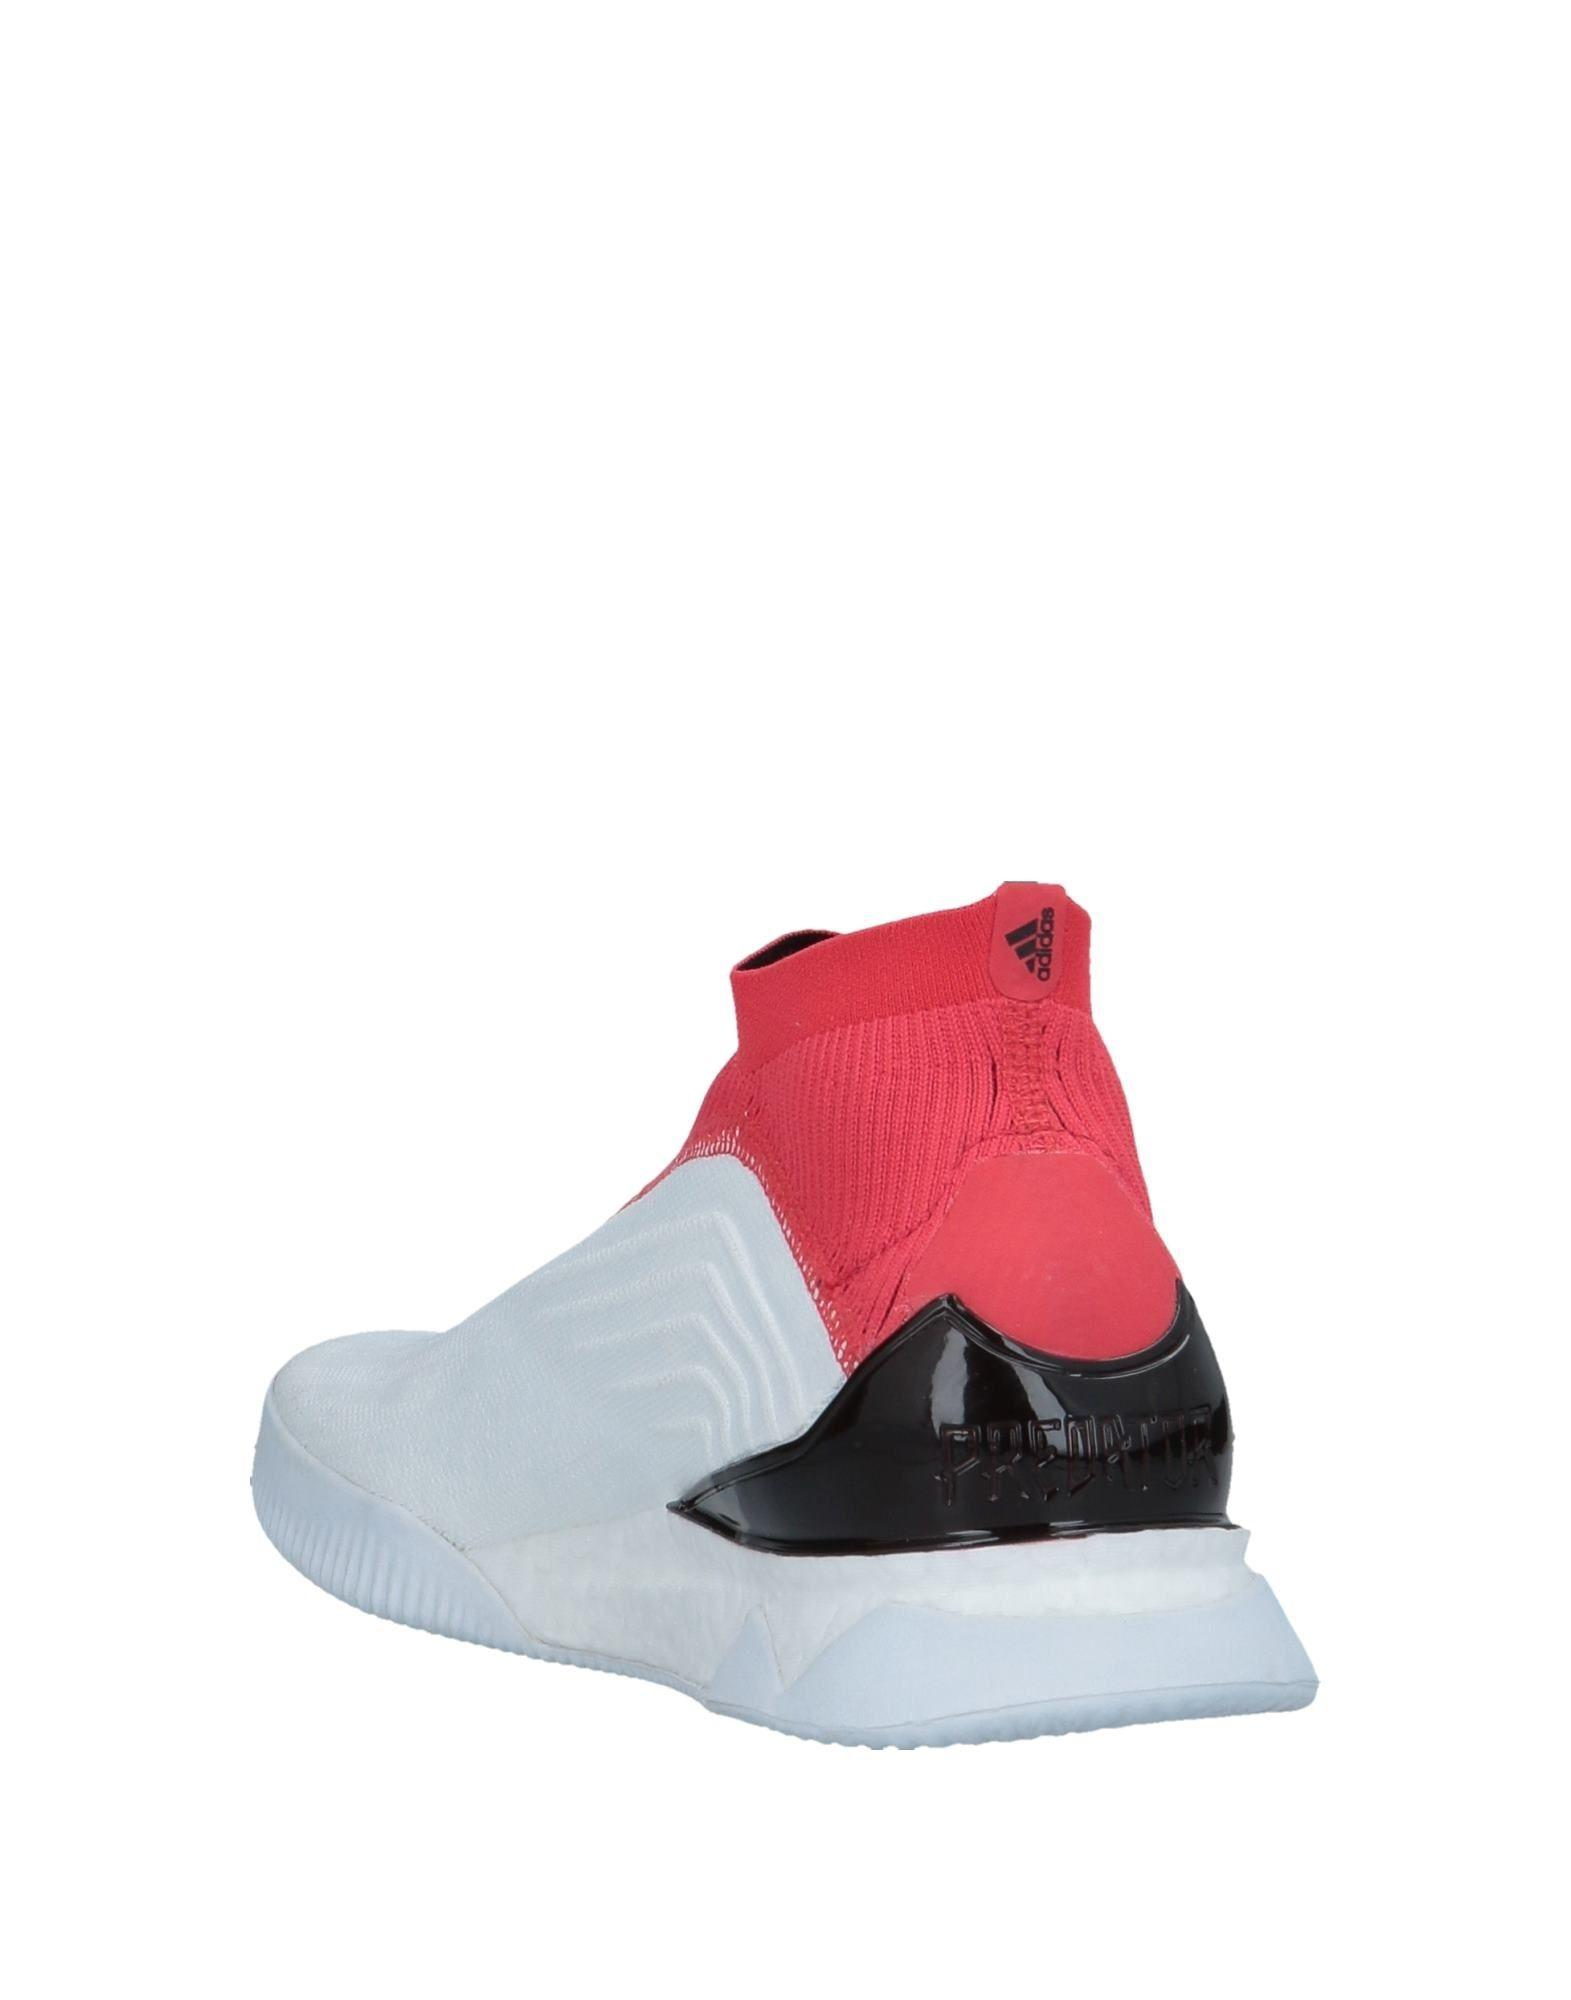 97d5208ff219 Lyst - adidas High-tops & Sneakers in White for Men